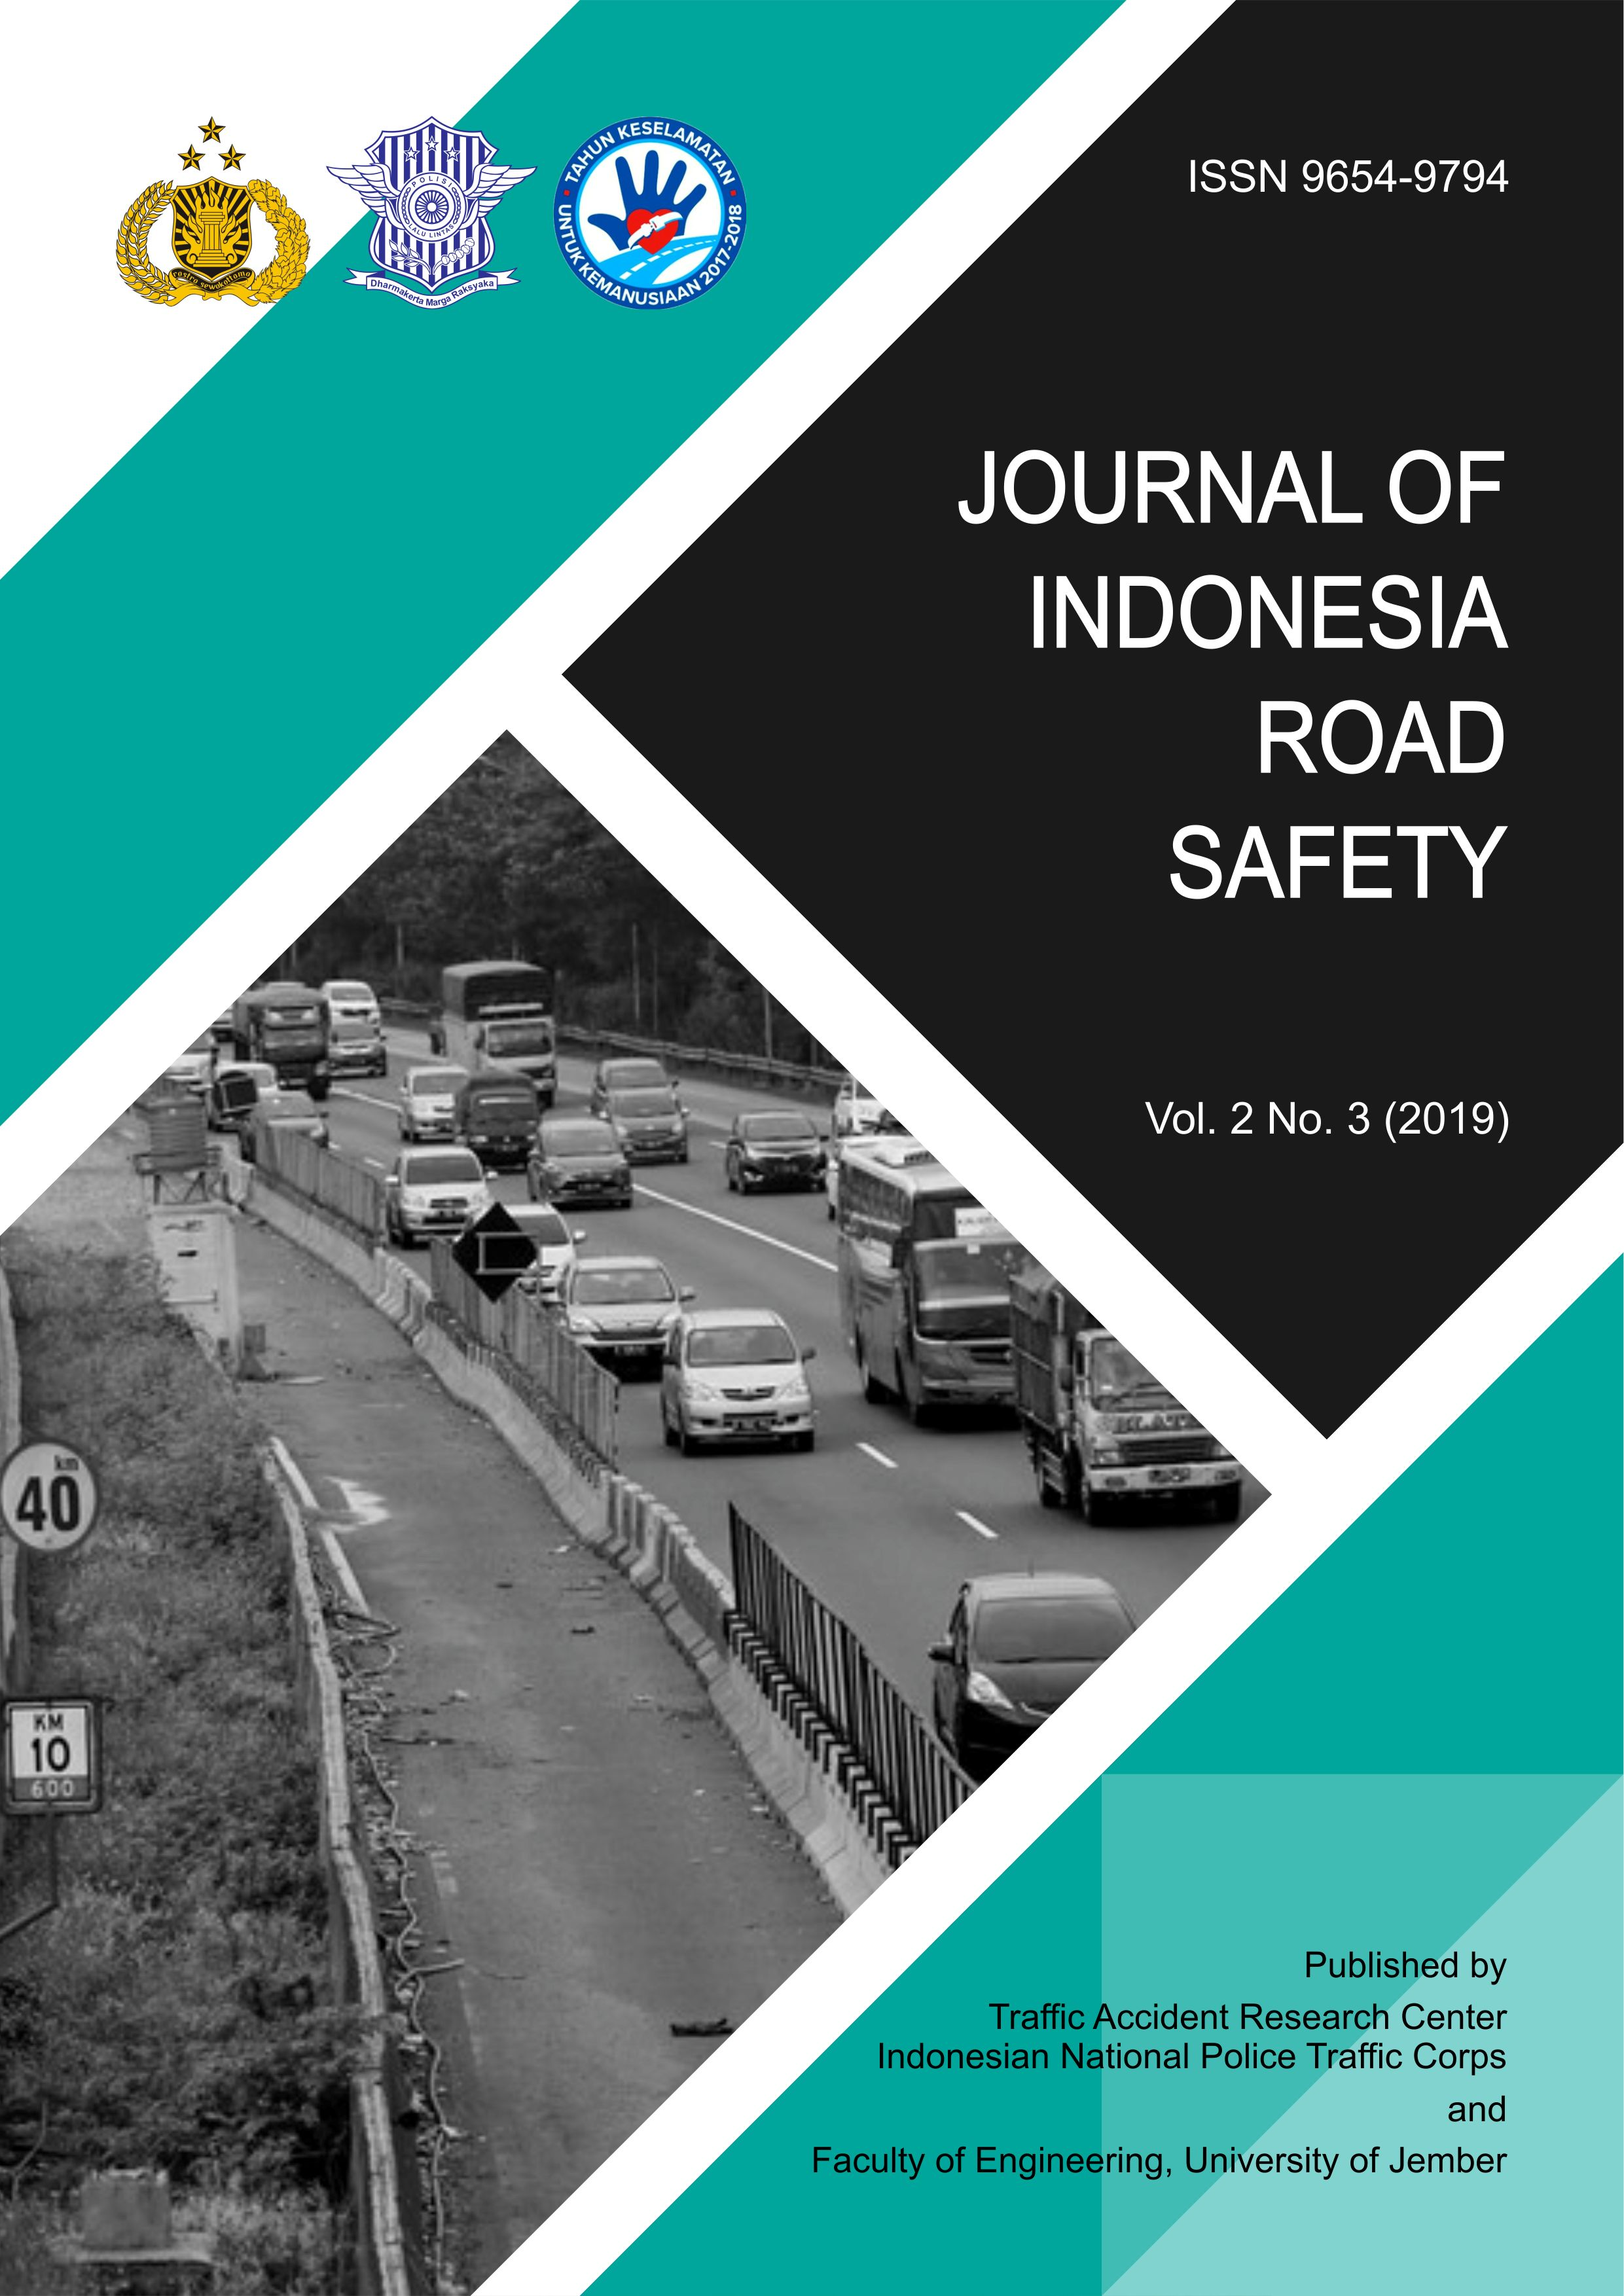 Published by Traffic Accident Research Center (TARC), Indonesian National Traffic Corps and Faculty of Engineering, University of Jember